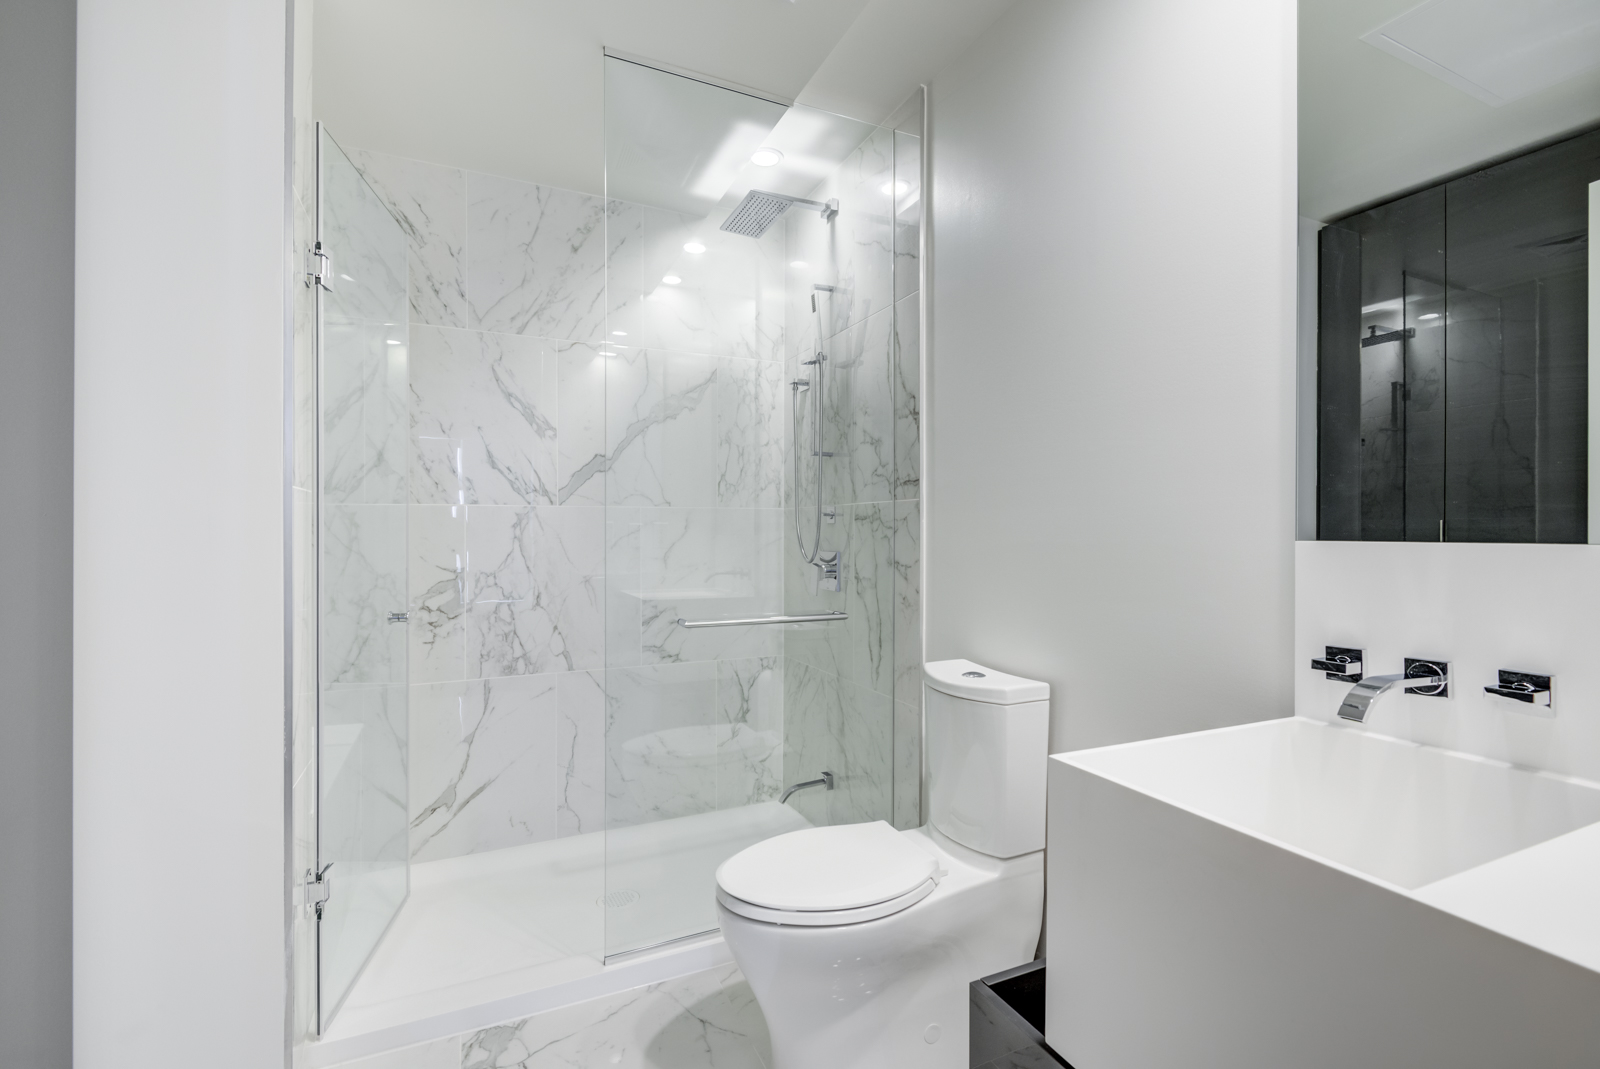 Highlights include a large sink, wall-mounted faucet, tall mirror, and frameless walk-in shower.